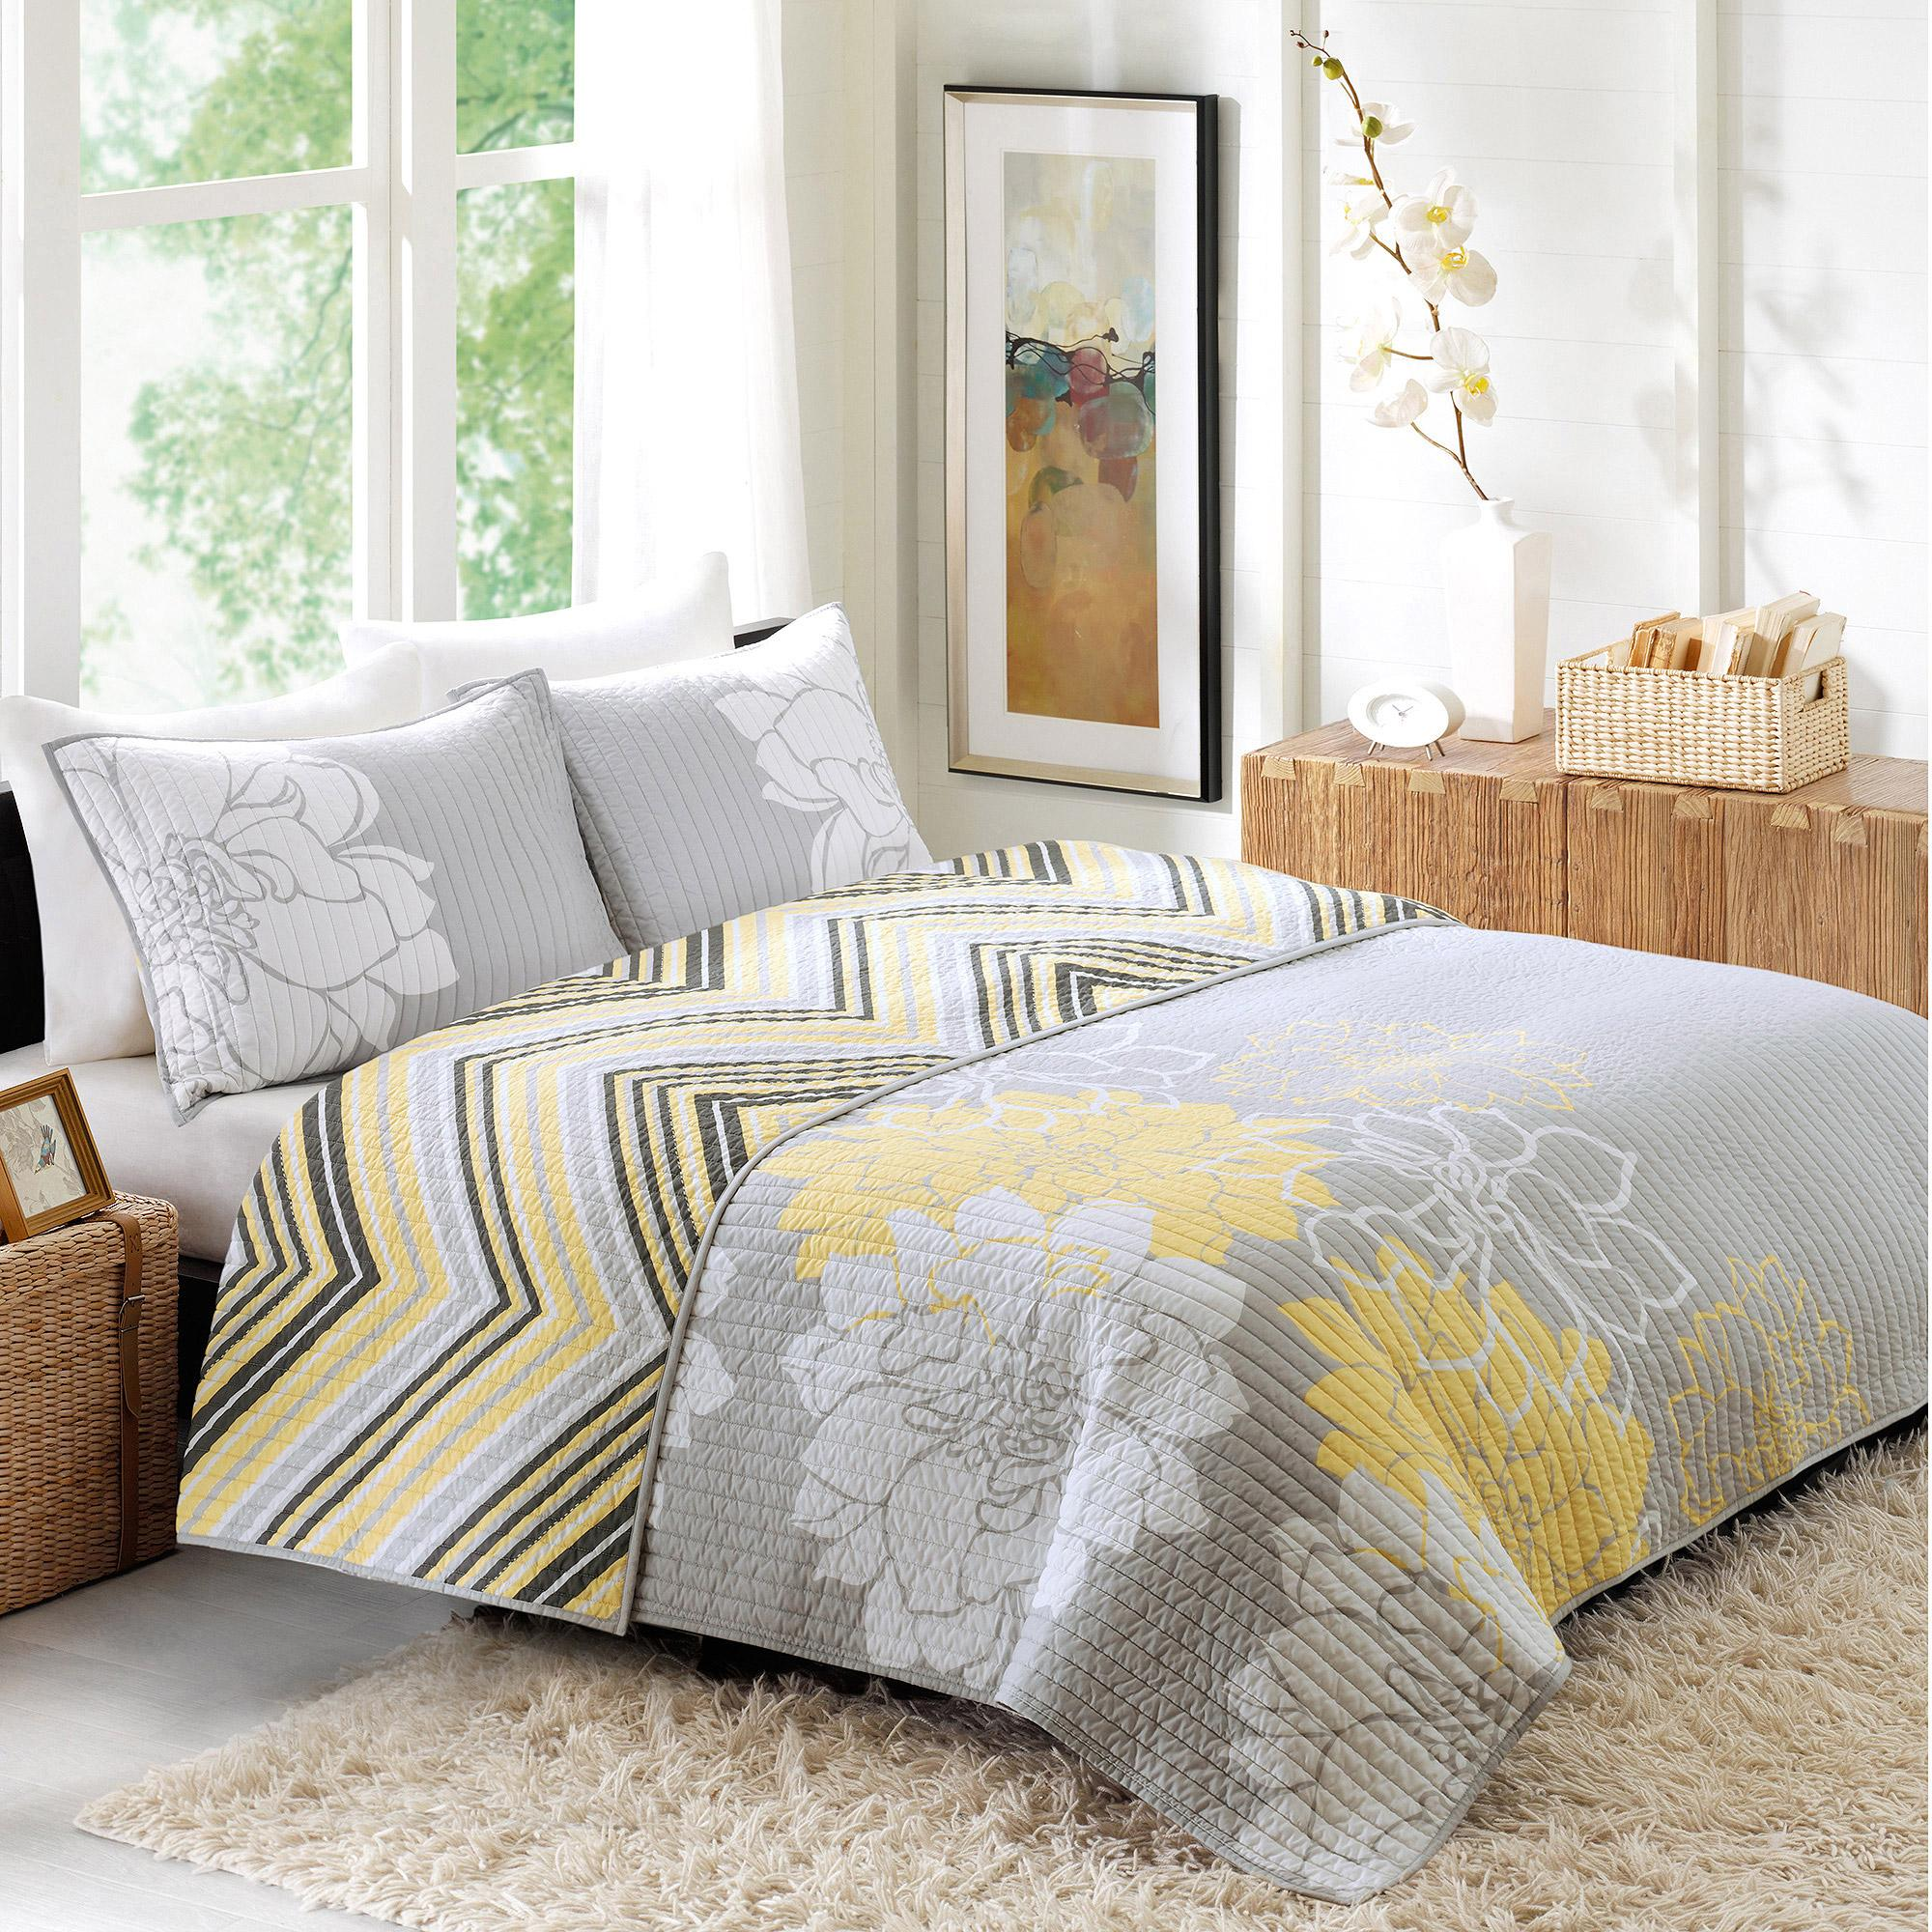 grey and light yellow bedding the image